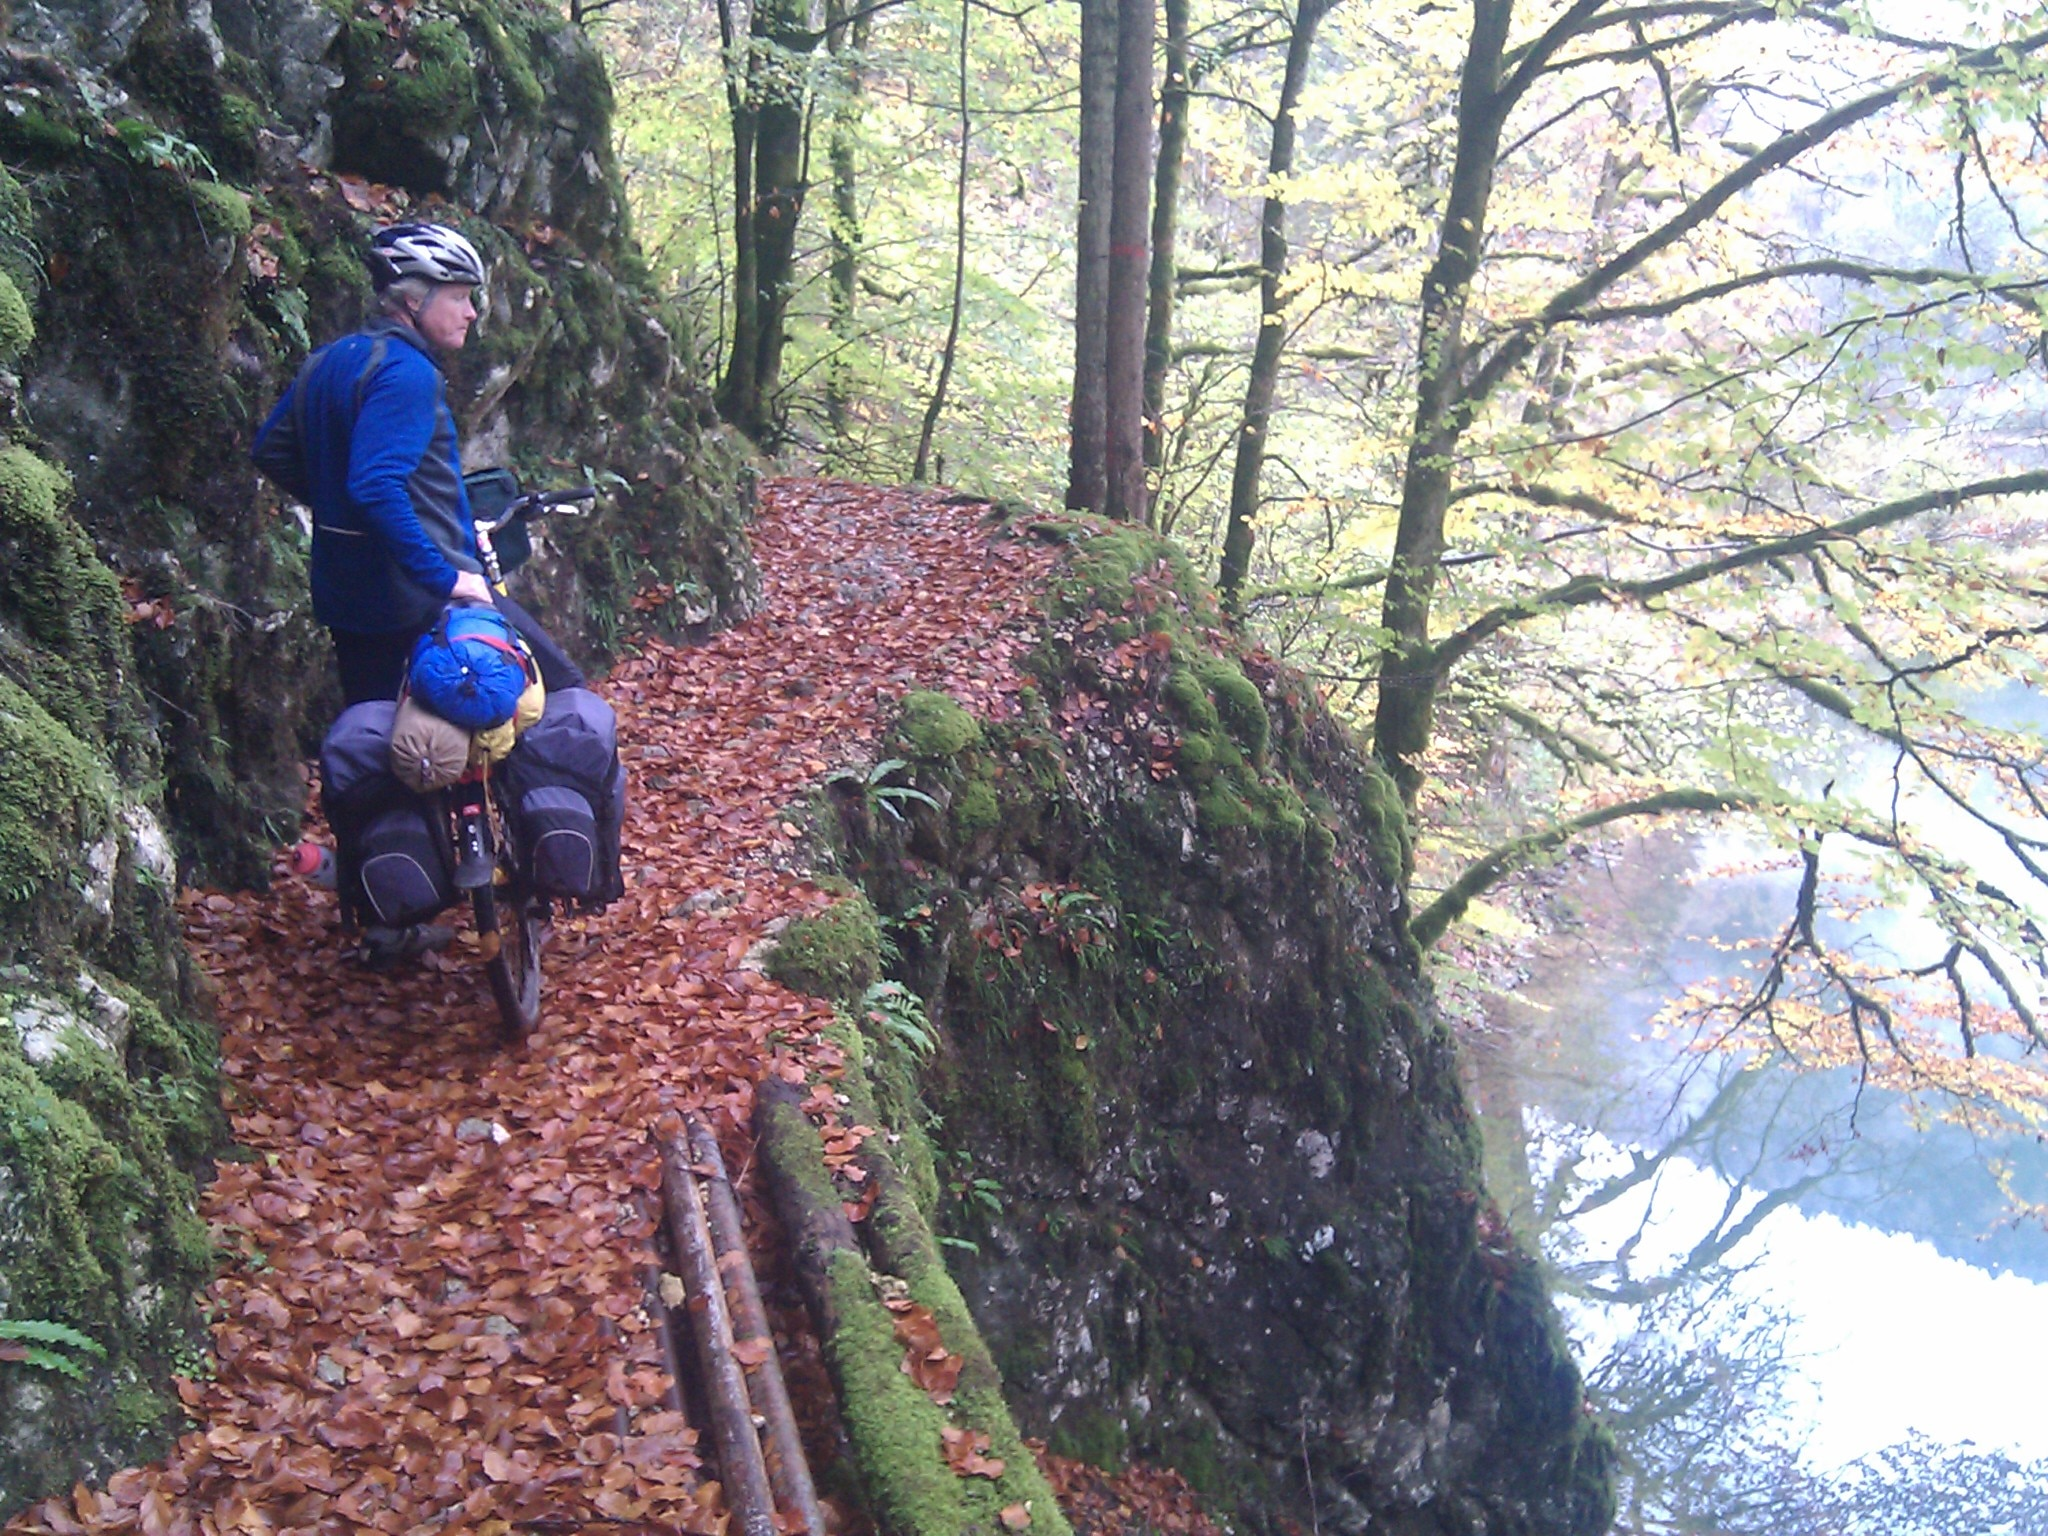 The trail on the Swiss side of the Doubs offered hundreds of hanging sections with cliffs above and below.